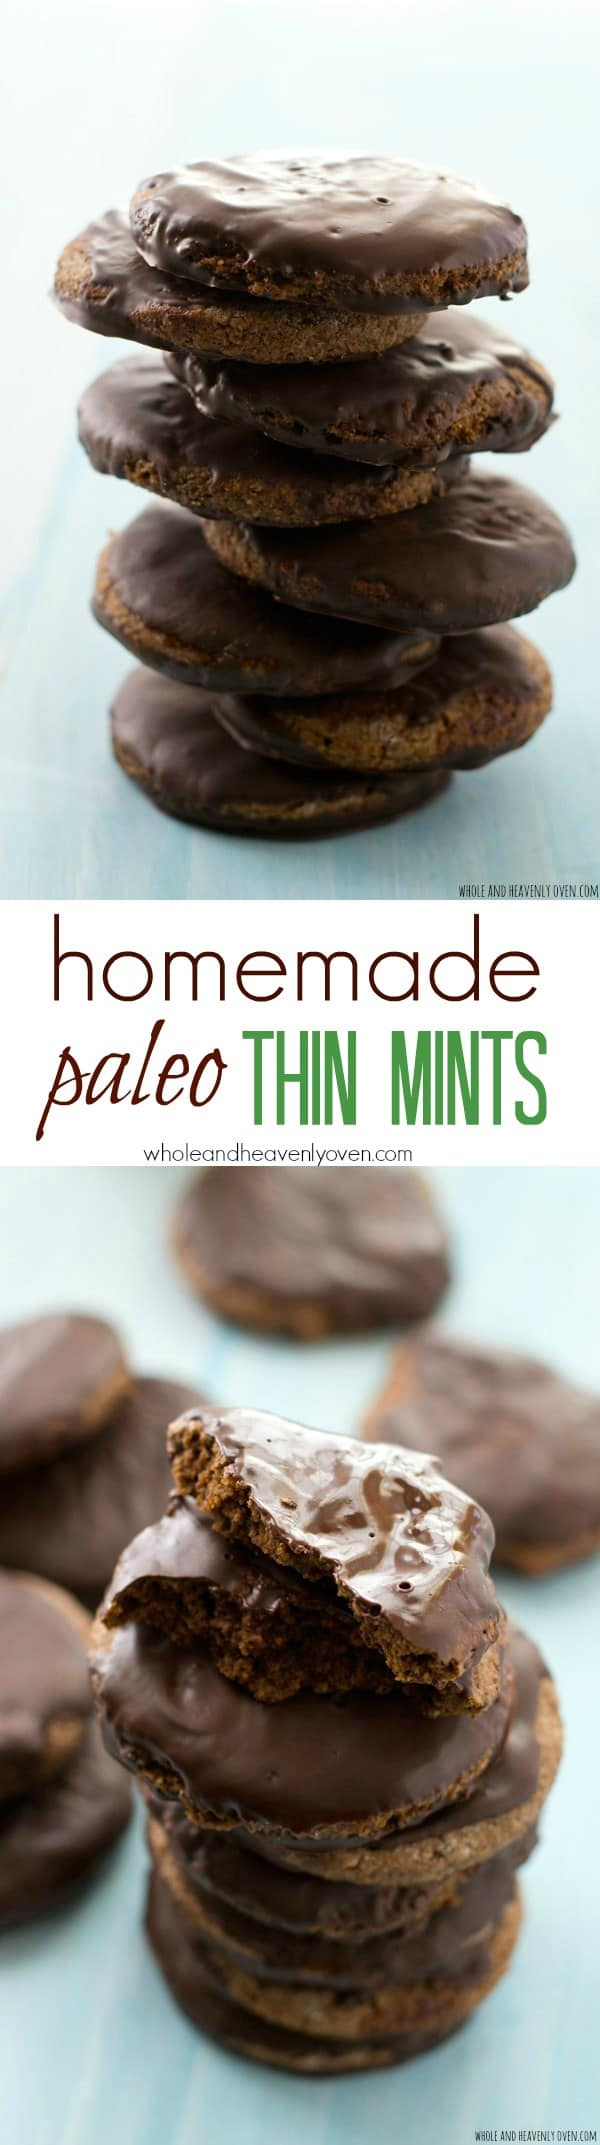 Now you don't have to miss out on the fun of Girl Scout cookie season with this allergy-friendly version of Thin Mints! Gluten-free, refined sugar-free, paleo, and totally addicting! @WholeHeavenly